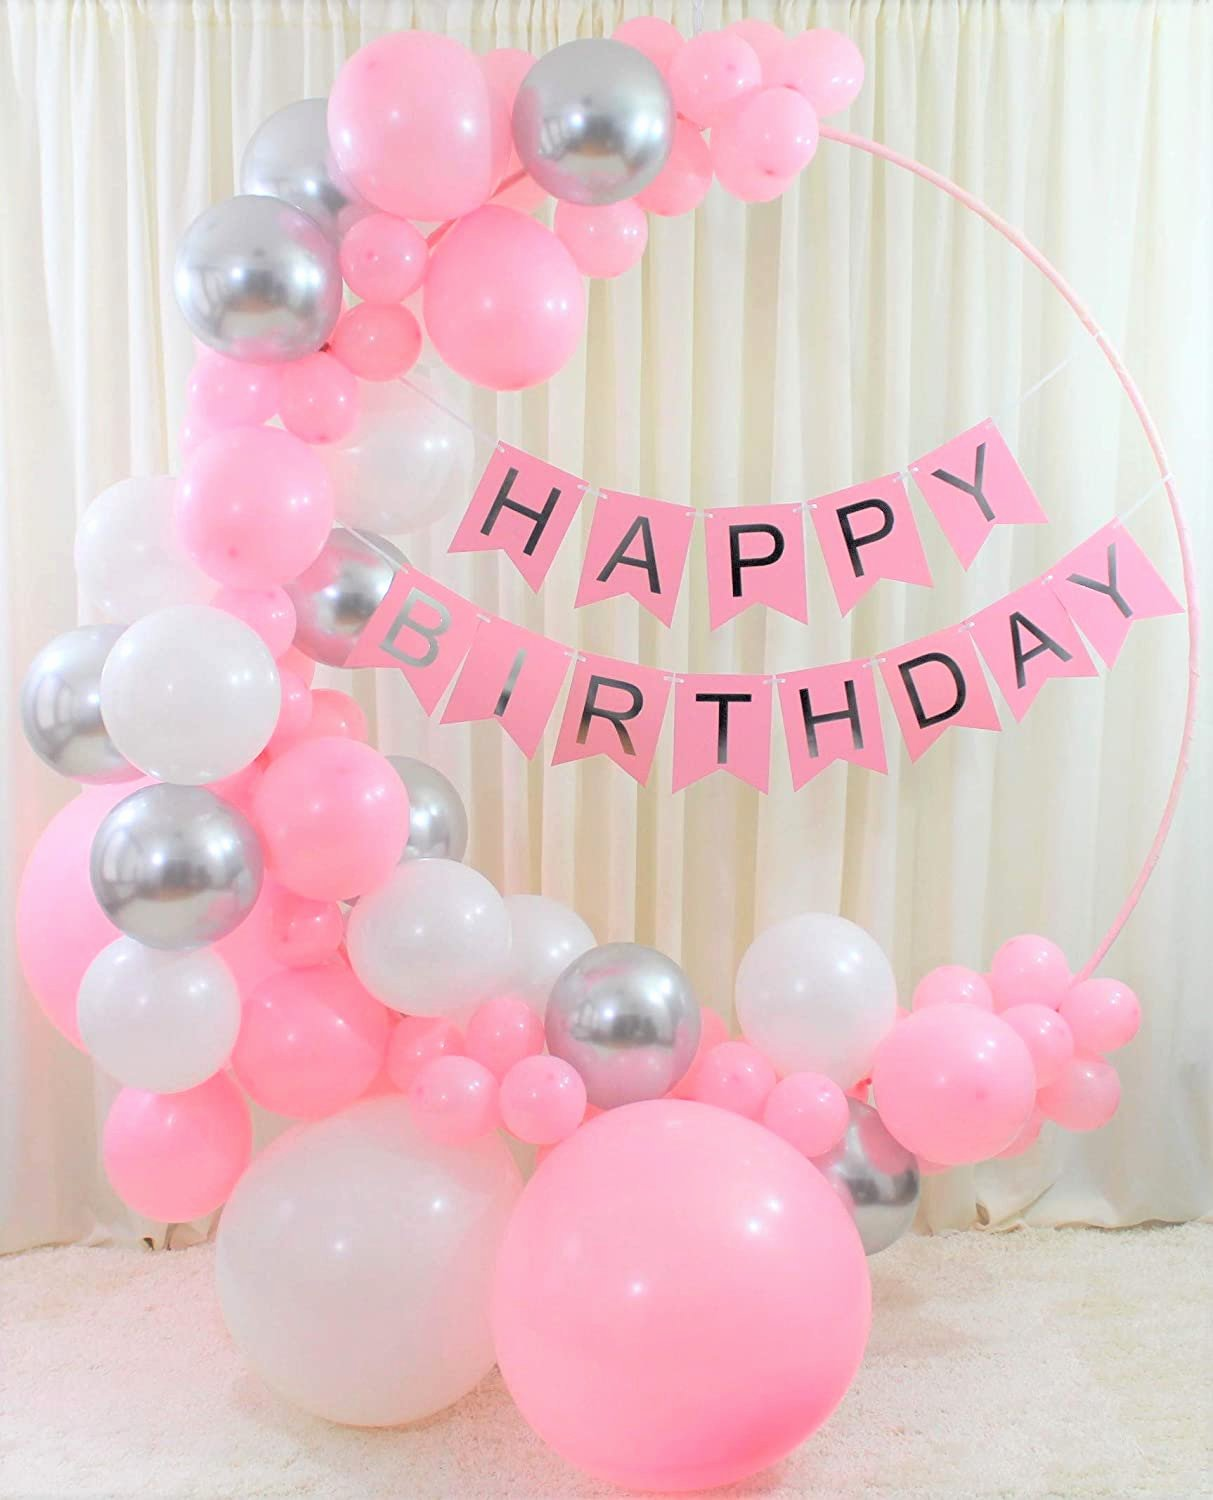 Birthday Decoration Ideas at Home for Baby Girl Beautiful Qutechat Happy Birthday Decorations for Women and Girls 88 Pink White and Silver Balloons Lovely Banner with White Ribbon Diy tool Kit for